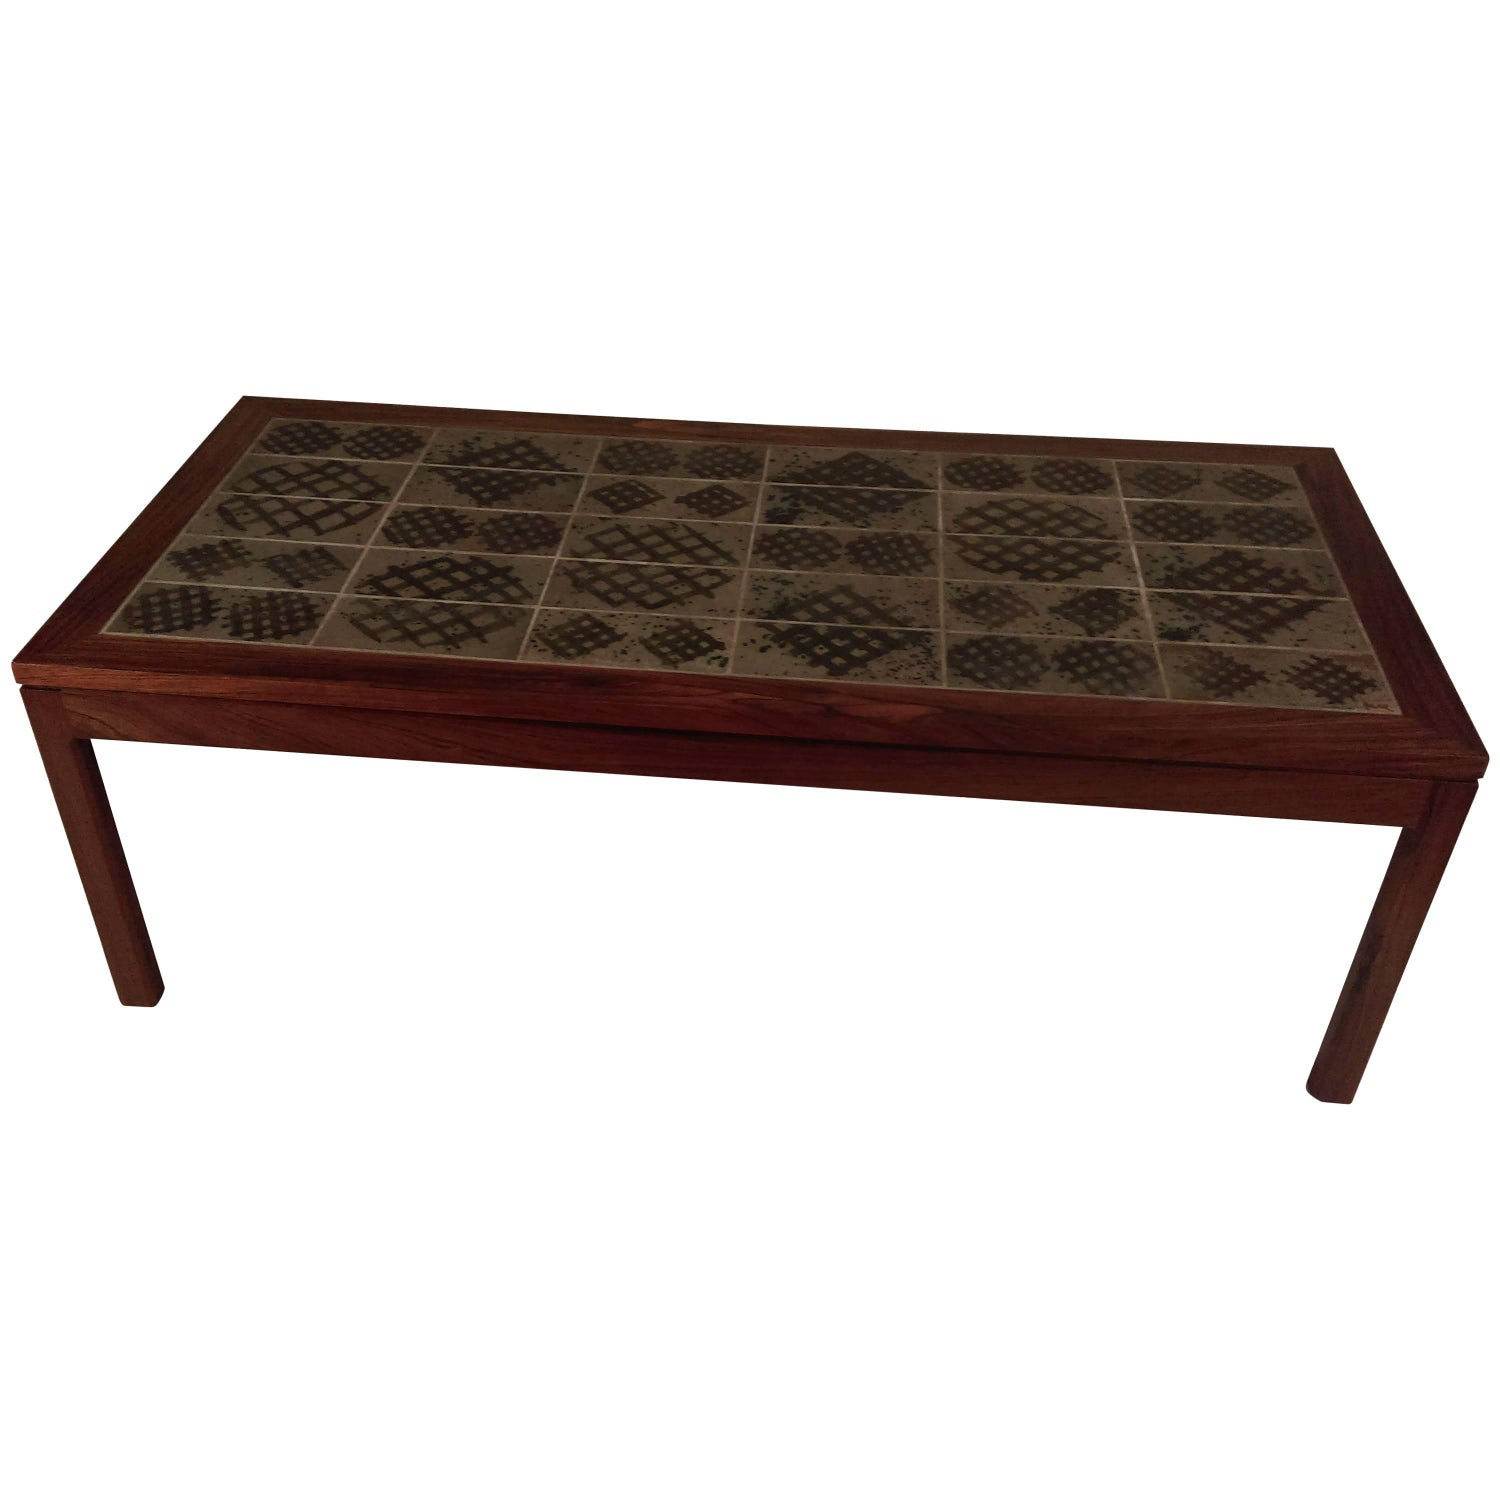 1960s Belgium Tile Top Coffee Table Signed Adri at 1stdibs